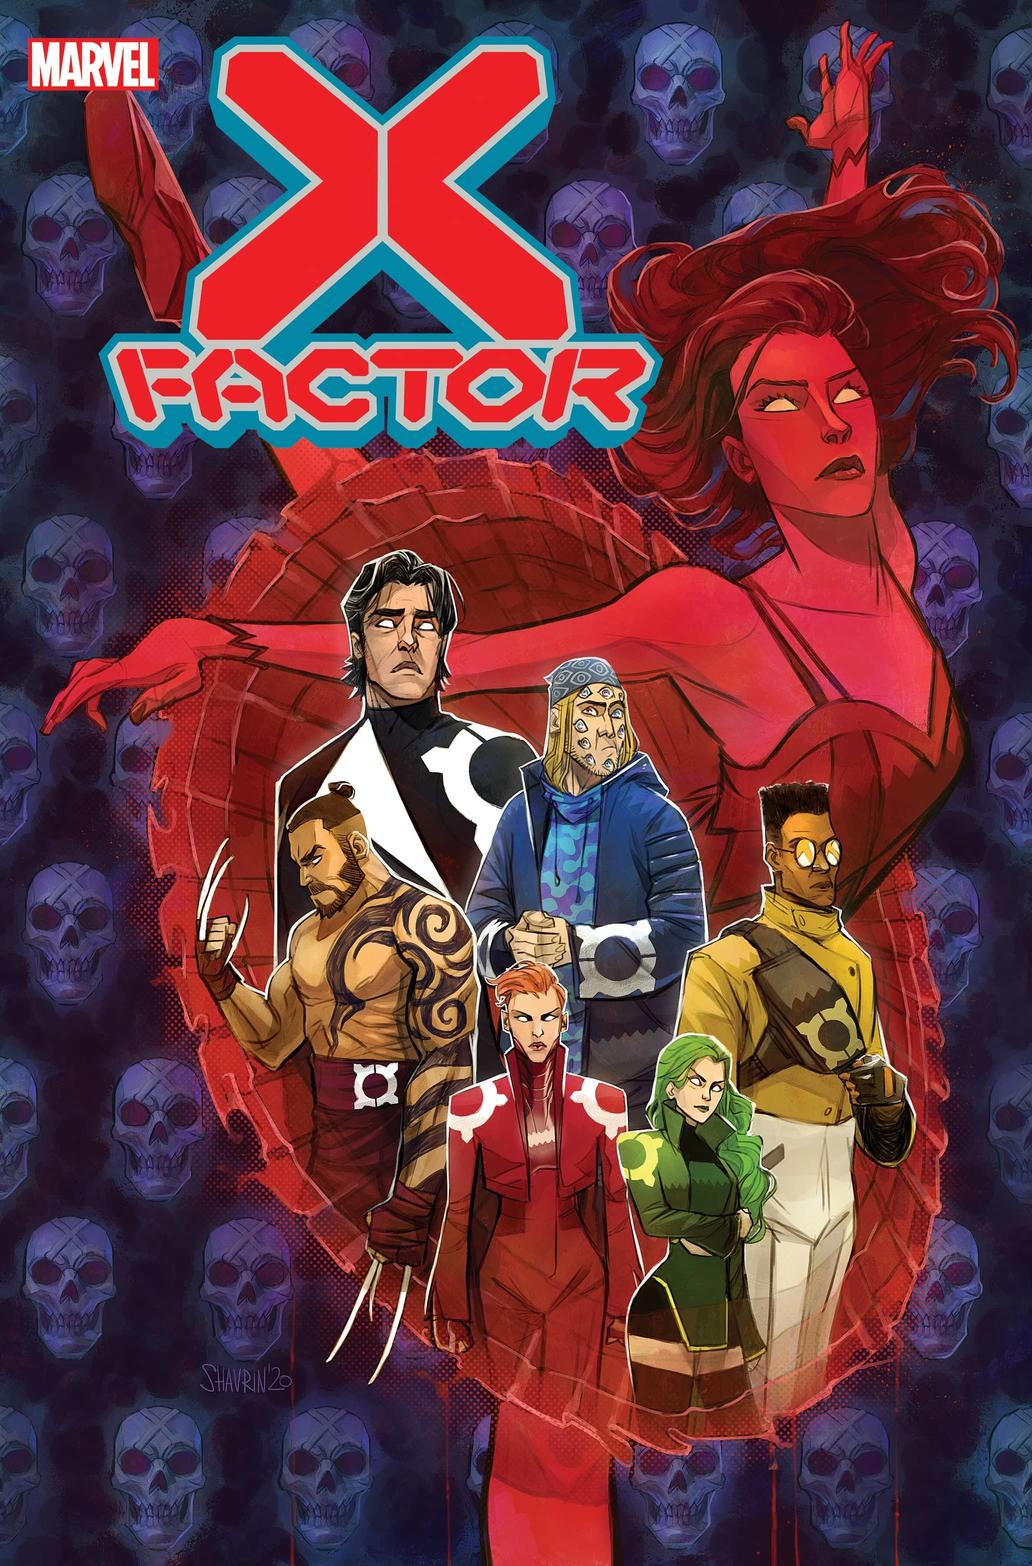 X-FACTOR #2 cover by Ivan Shavrin